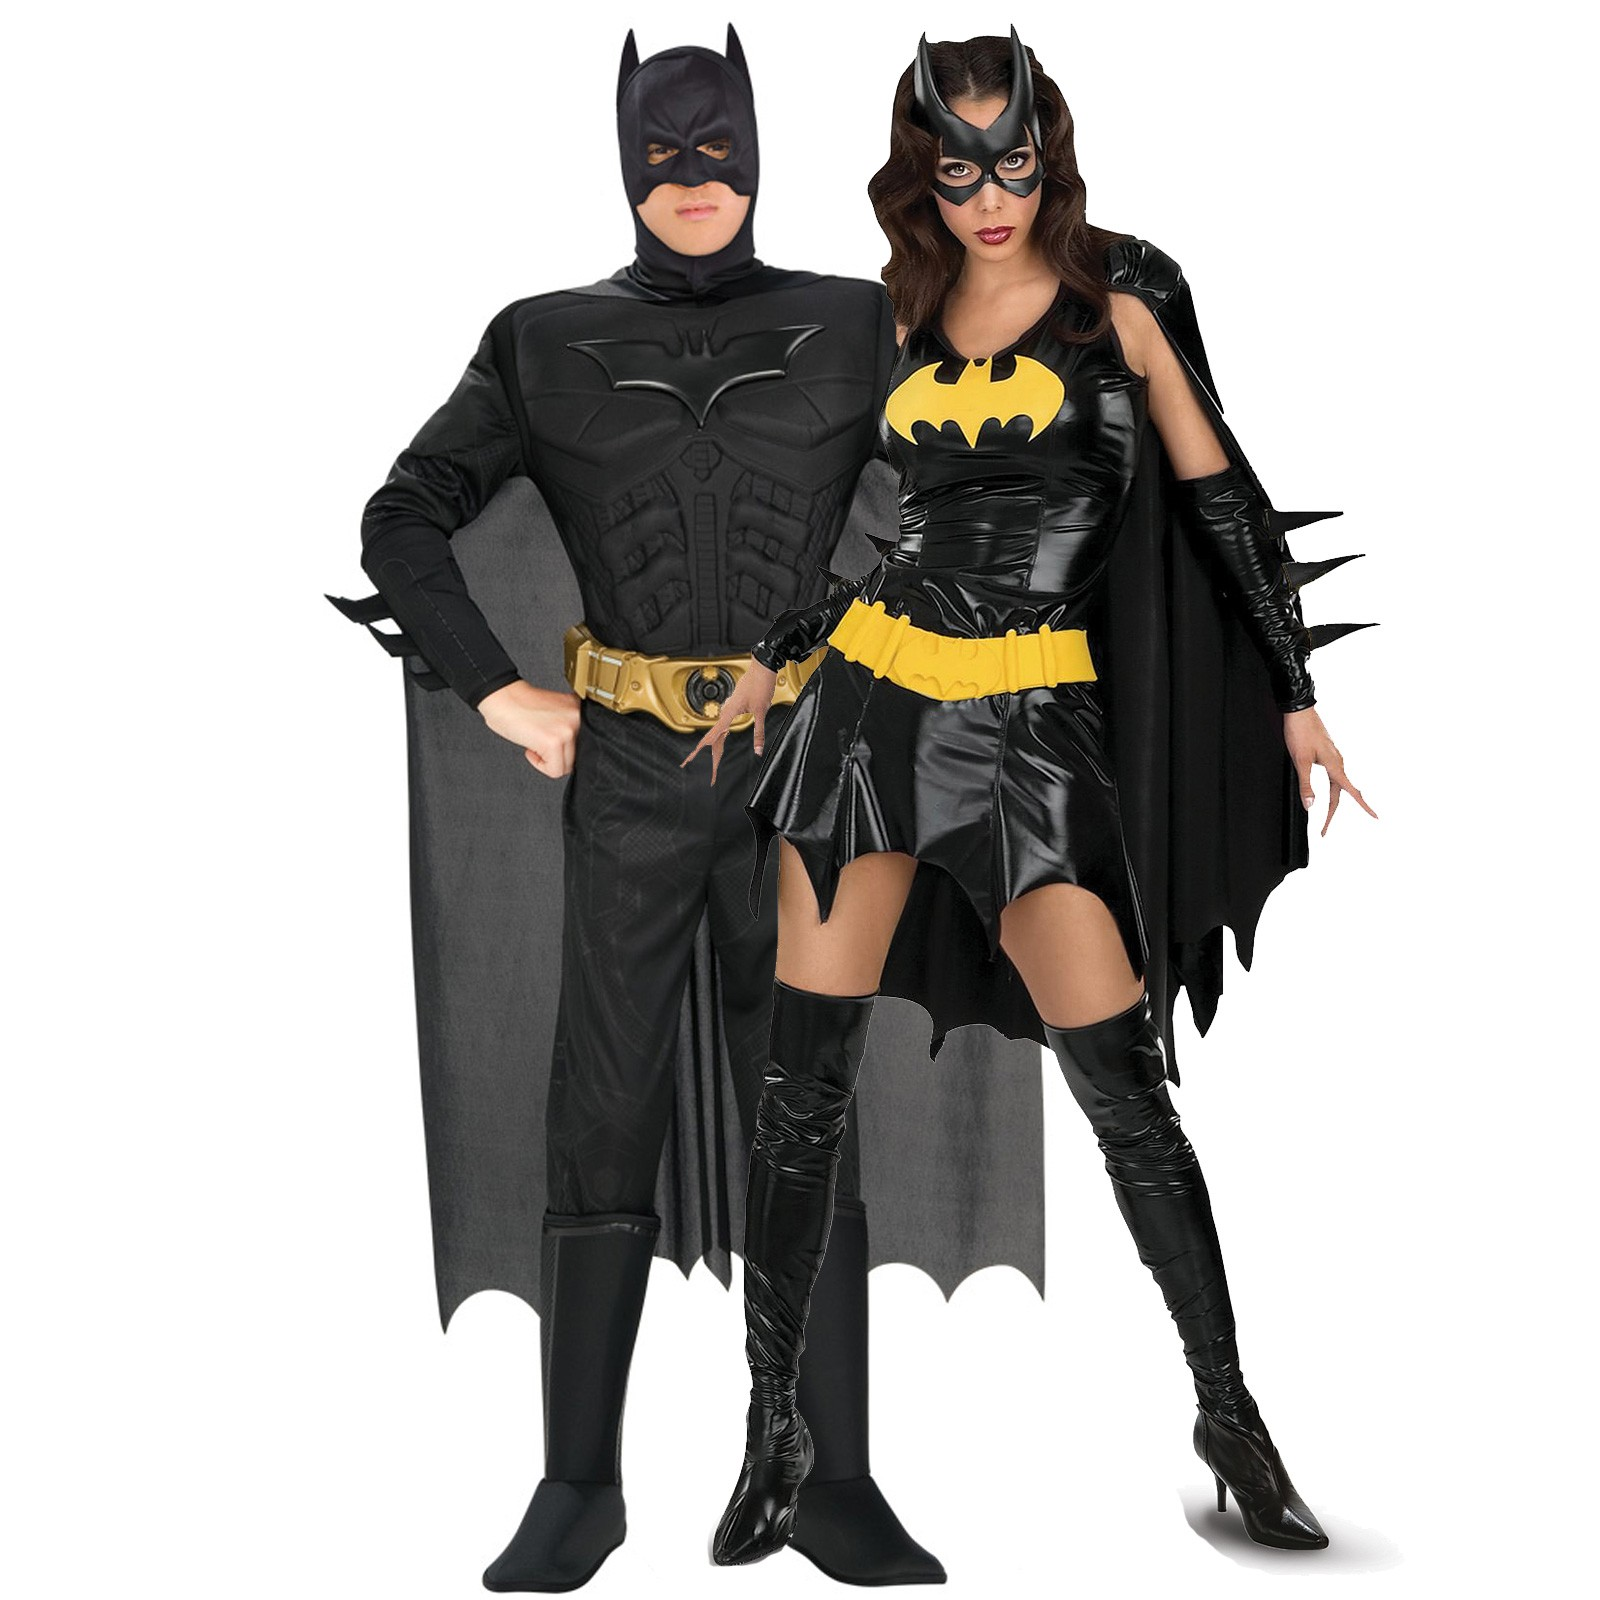 Batman And Bat Girl Deluxe Couples Costume -1251